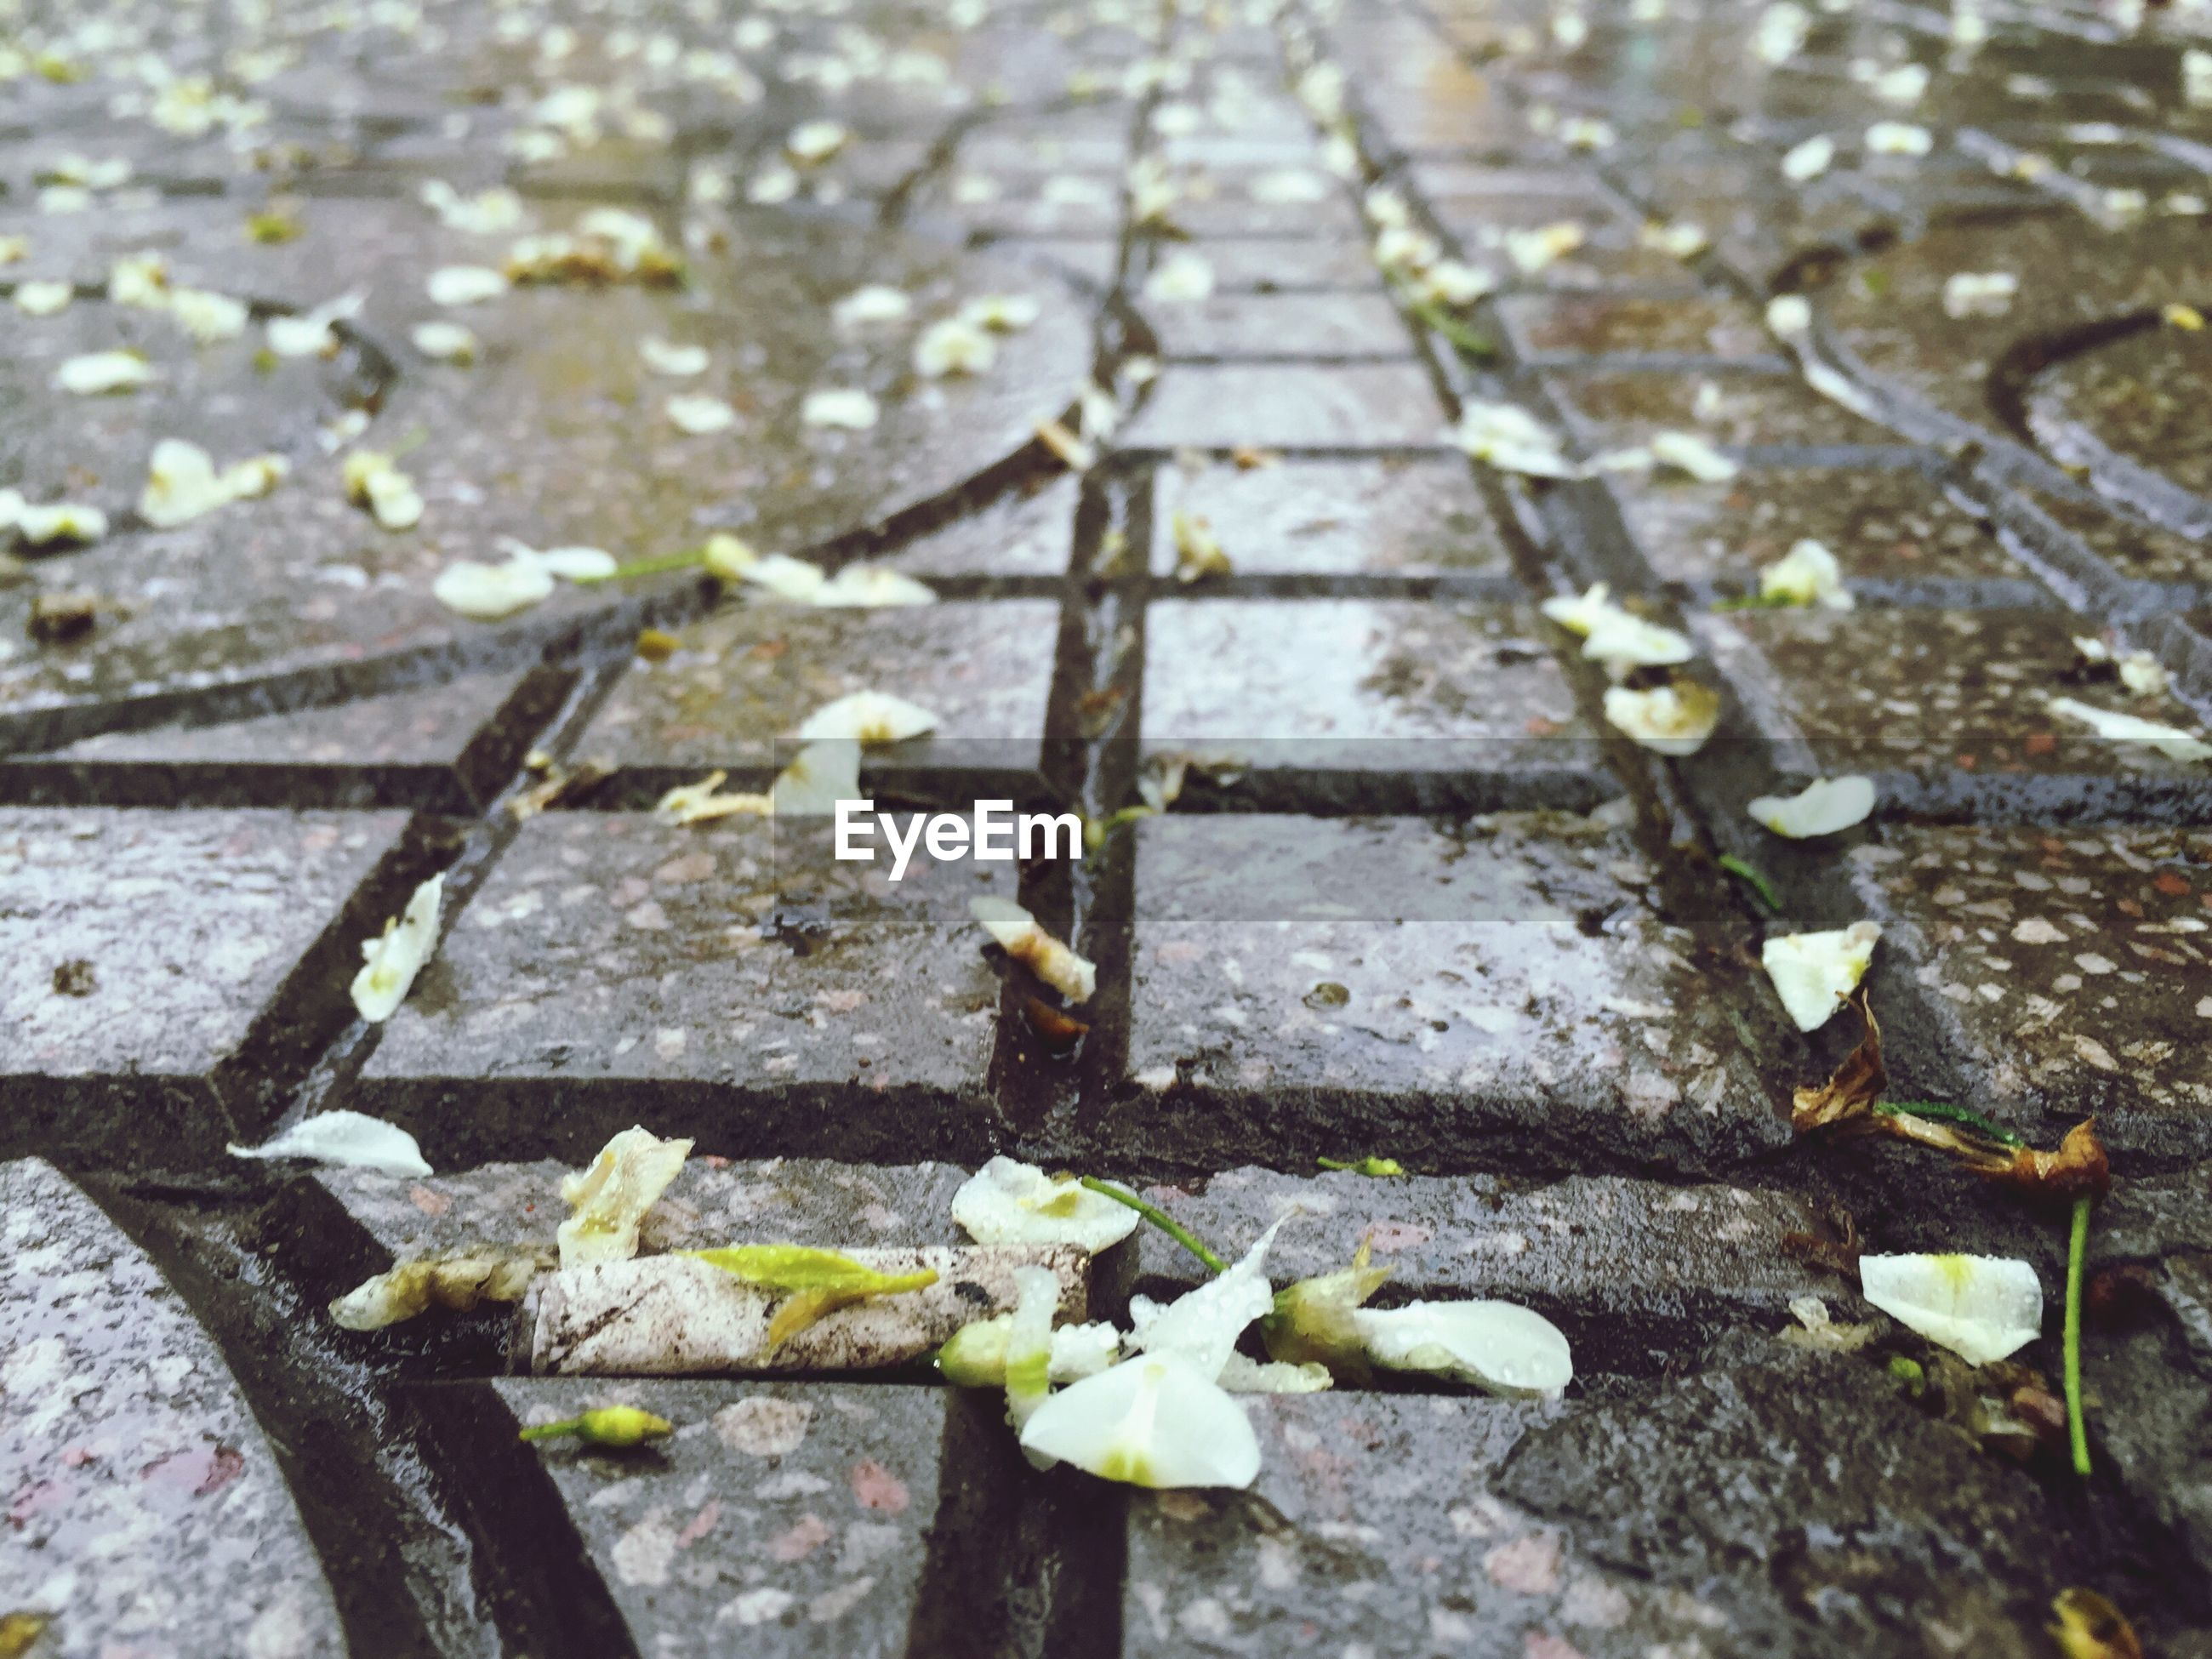 high angle view, the way forward, surface level, close-up, day, selective focus, street, outdoors, textured, railroad track, transportation, no people, stone - object, water, leaf, wet, wood - material, asphalt, metal, diminishing perspective